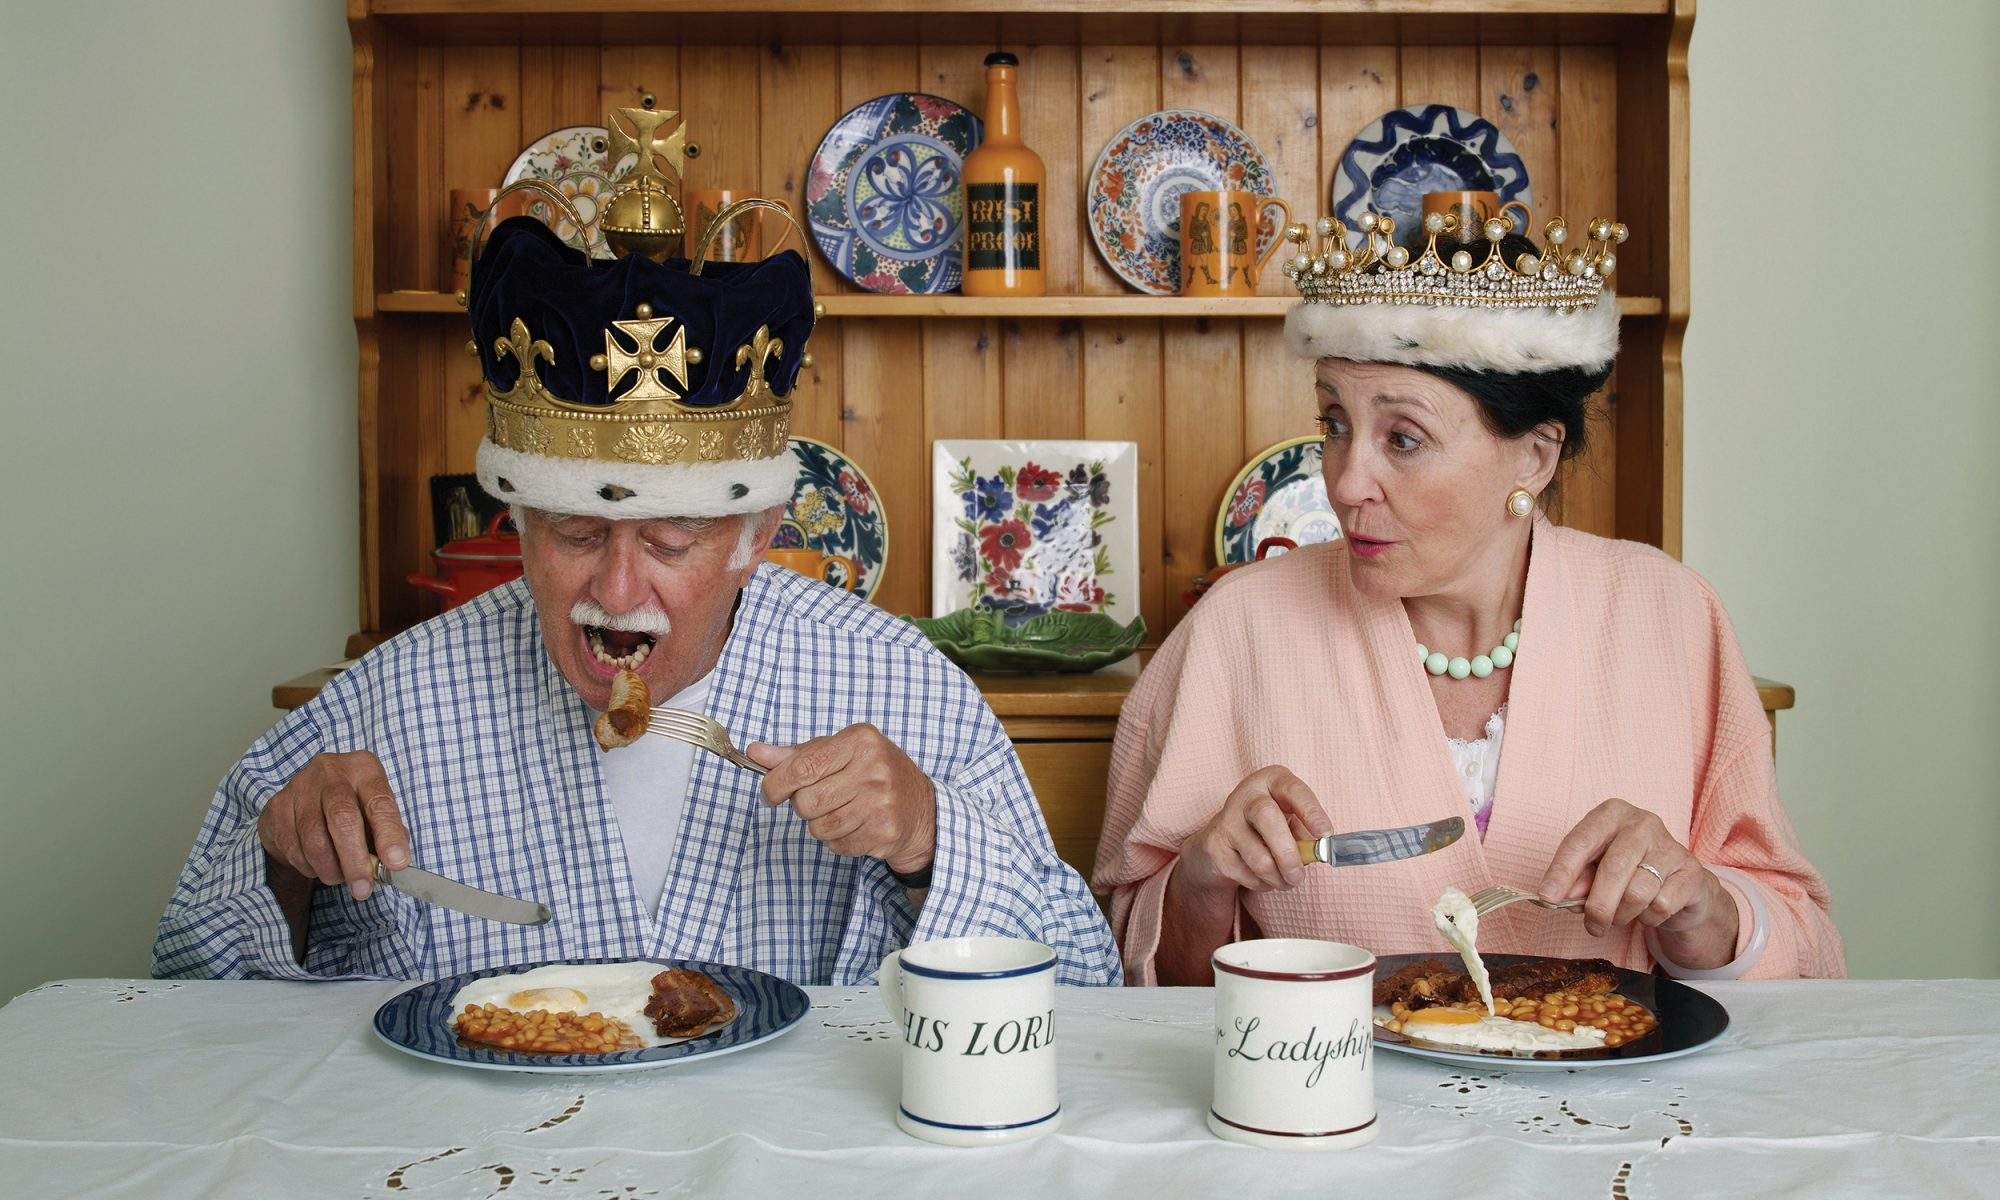 EC: Eating Breakfast Like a King Is Good for Your Health